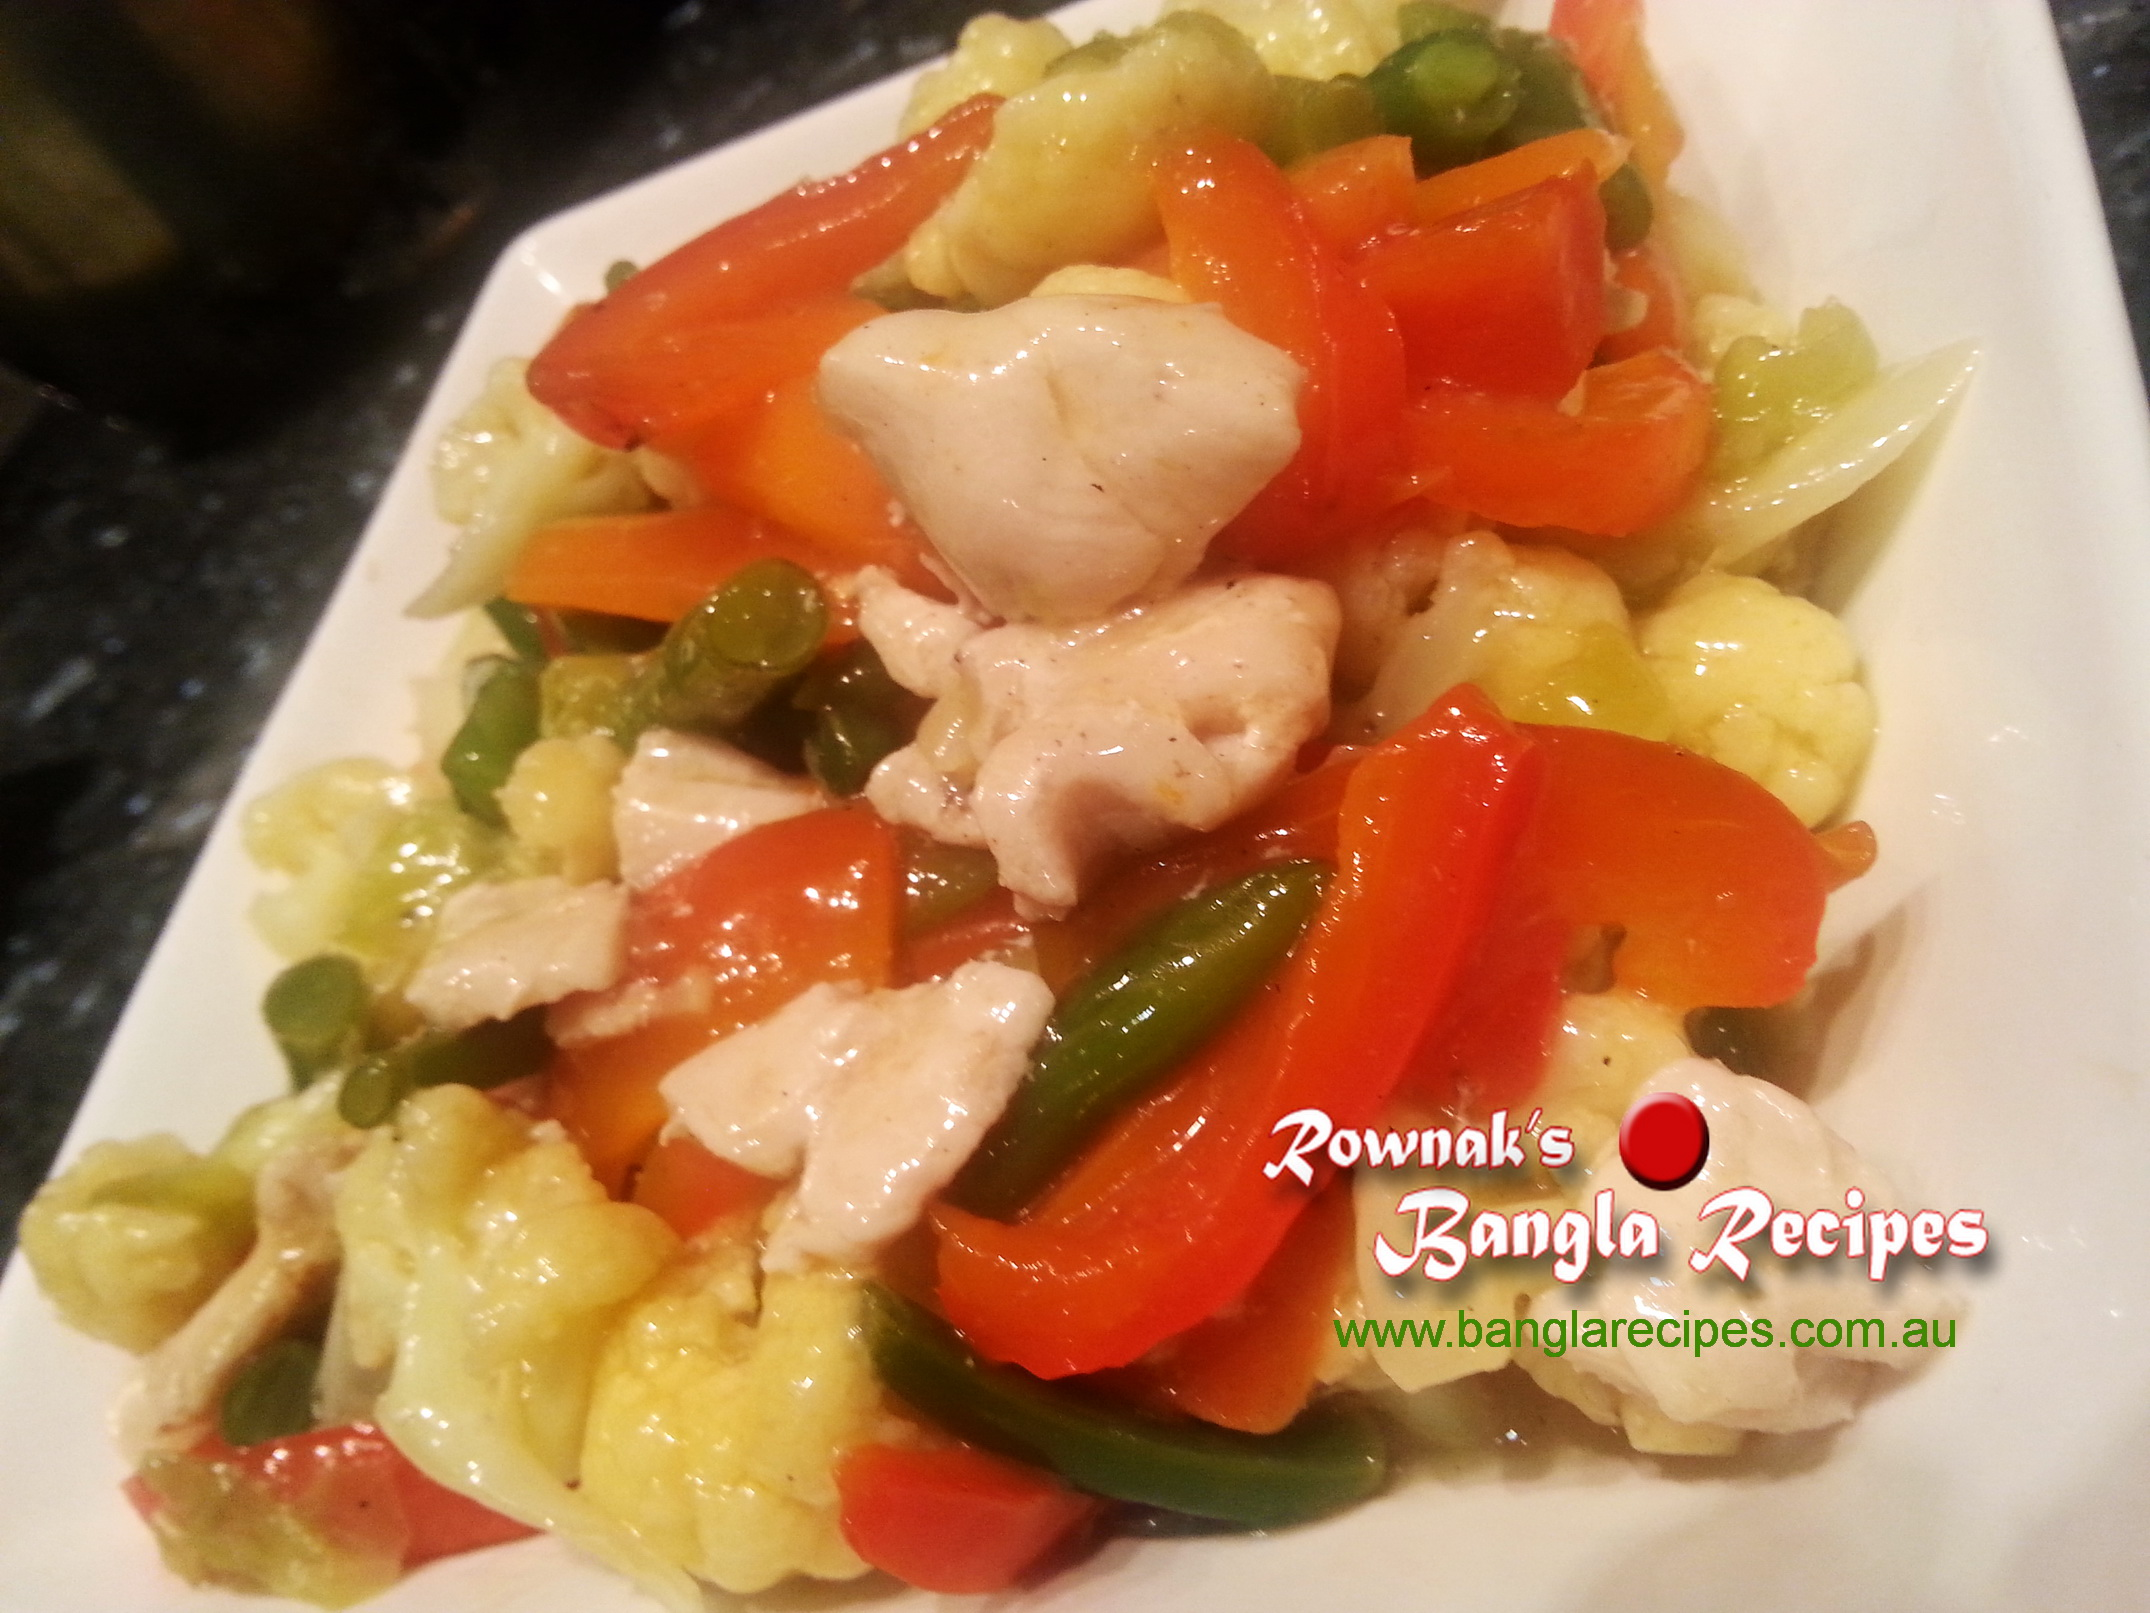 Chinese mixed vegetables with chicken banglarecipes by rownak chinese mixed vegetables with chicken forumfinder